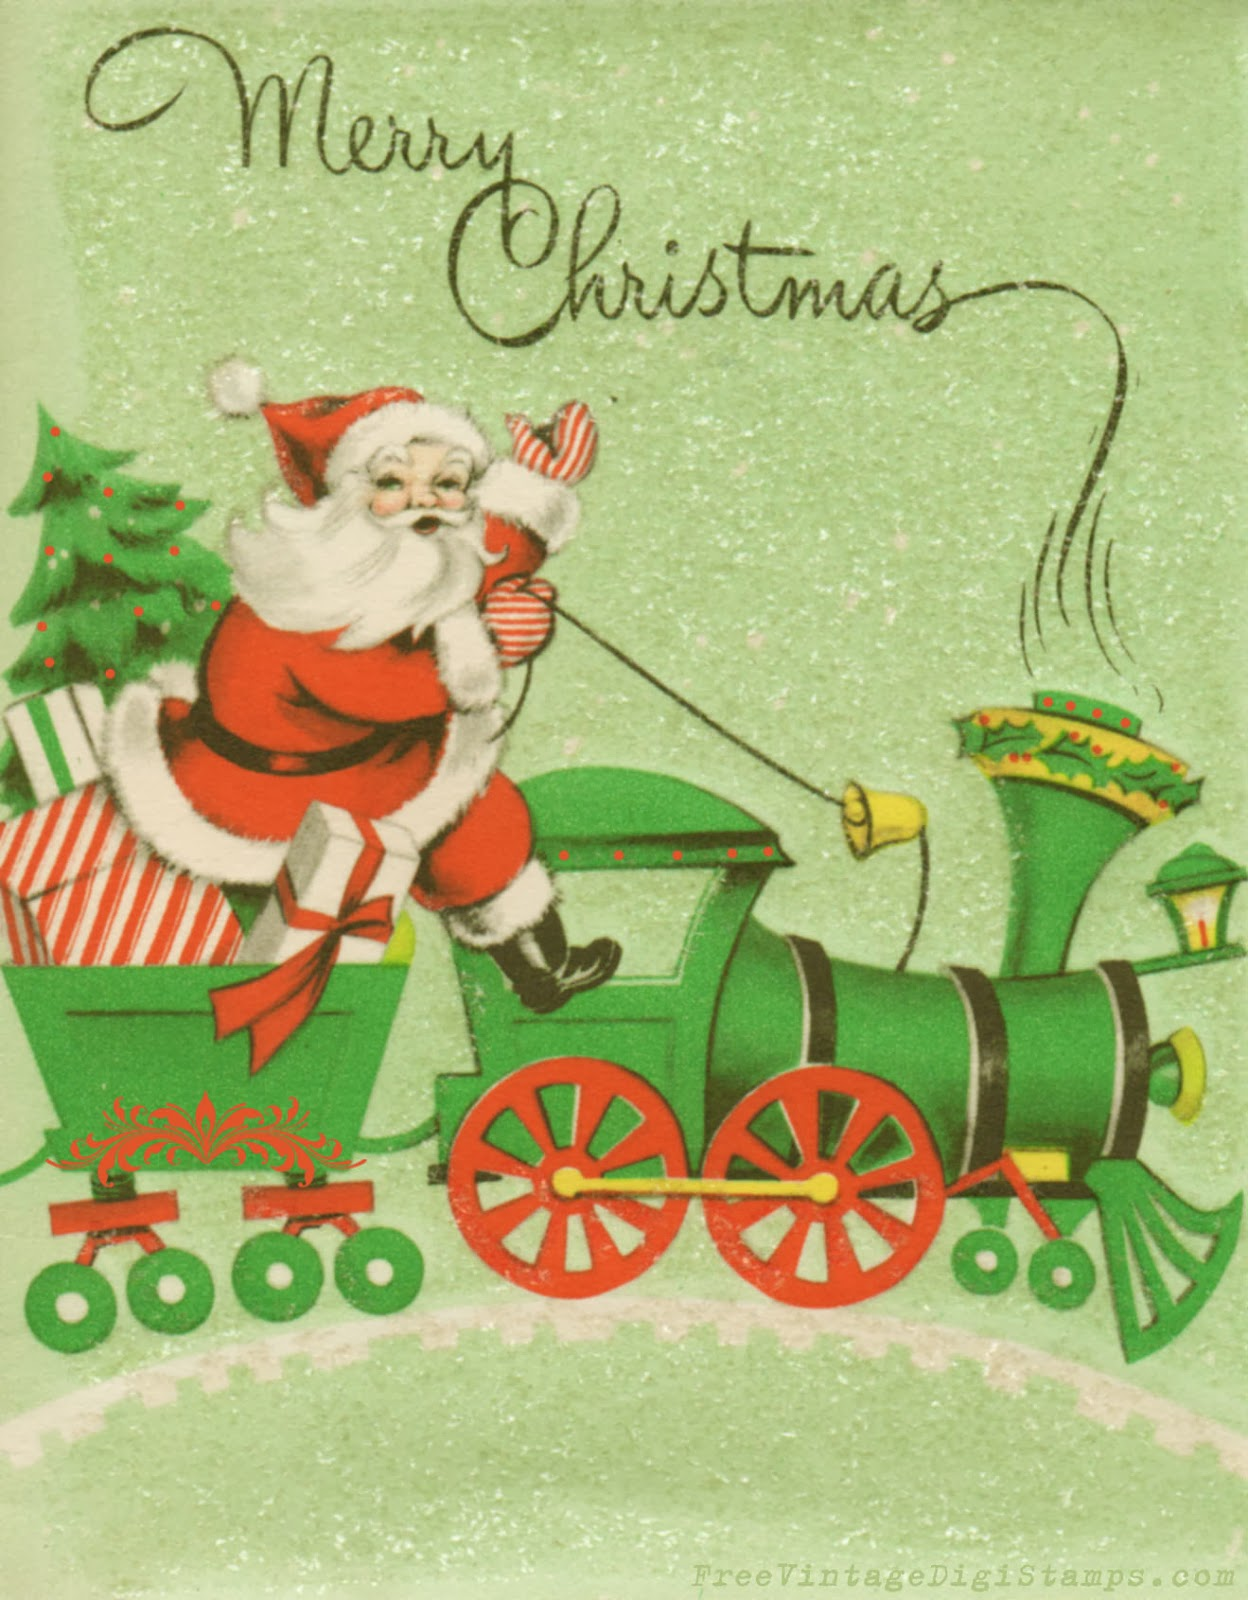 free vintage digital stamps vintage printable santa riding a train. Black Bedroom Furniture Sets. Home Design Ideas